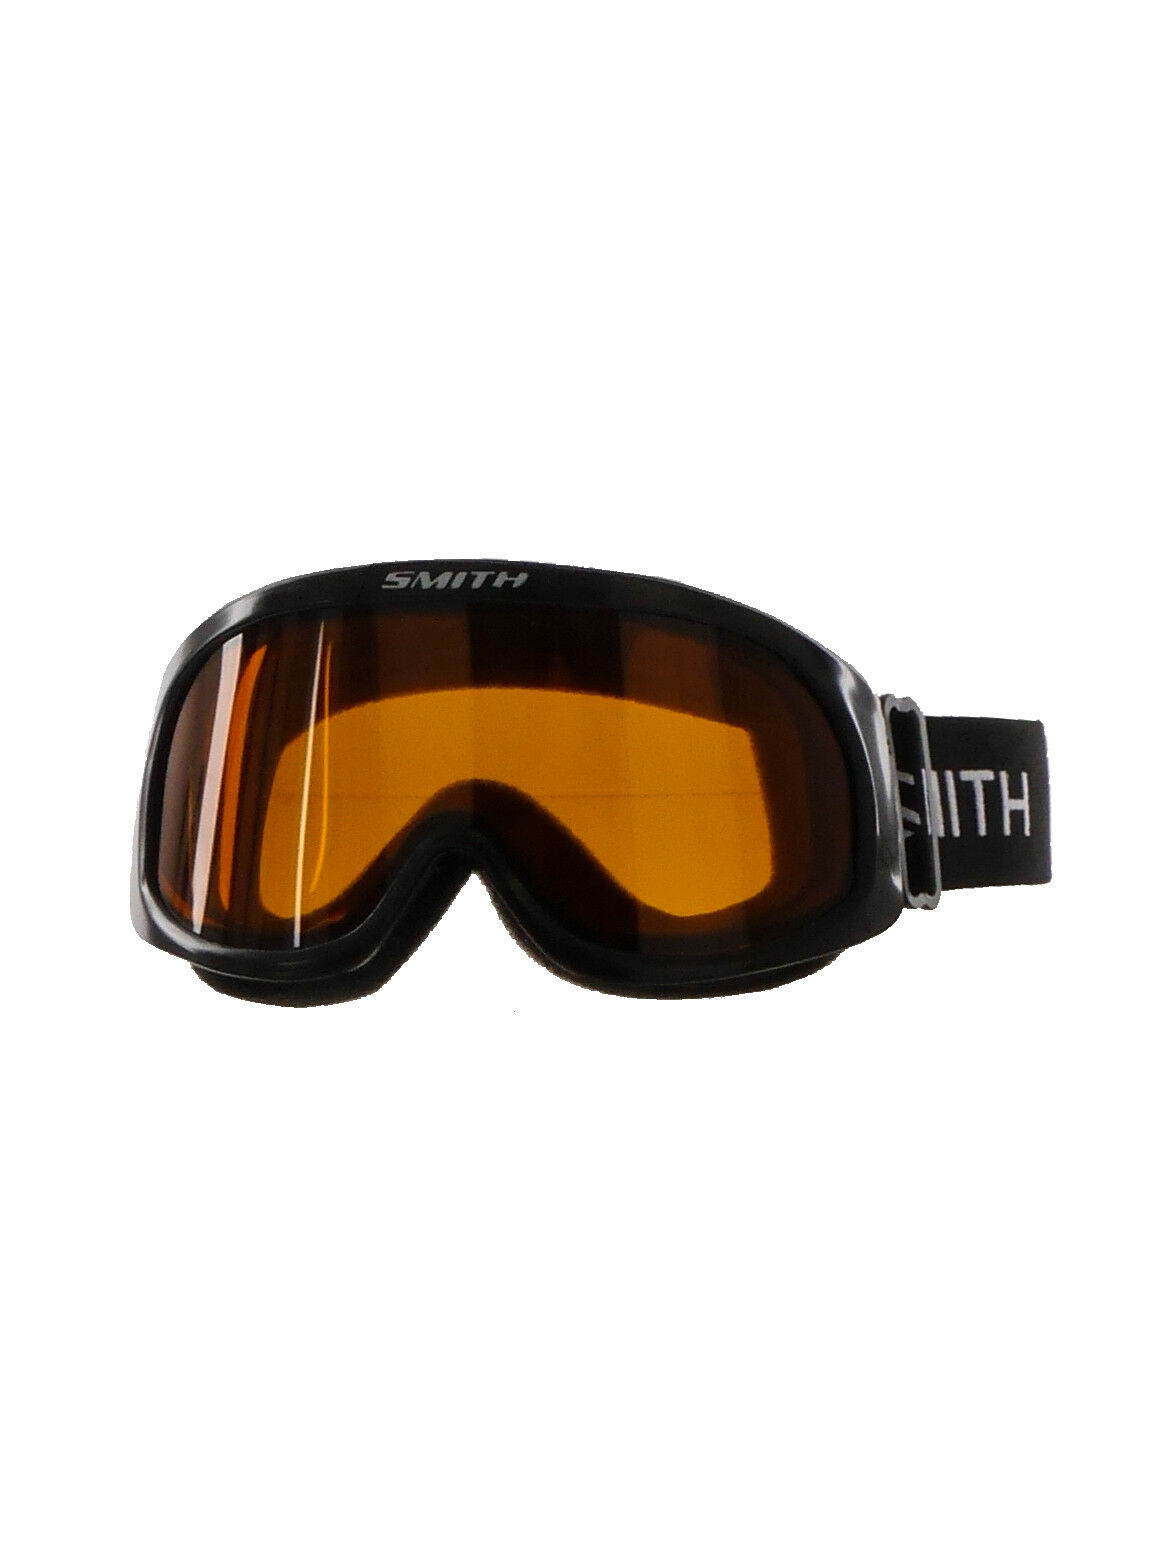 Smith Gafas de Esquí Gafas de Snowboard World Cup black  colors Lisos  no tax